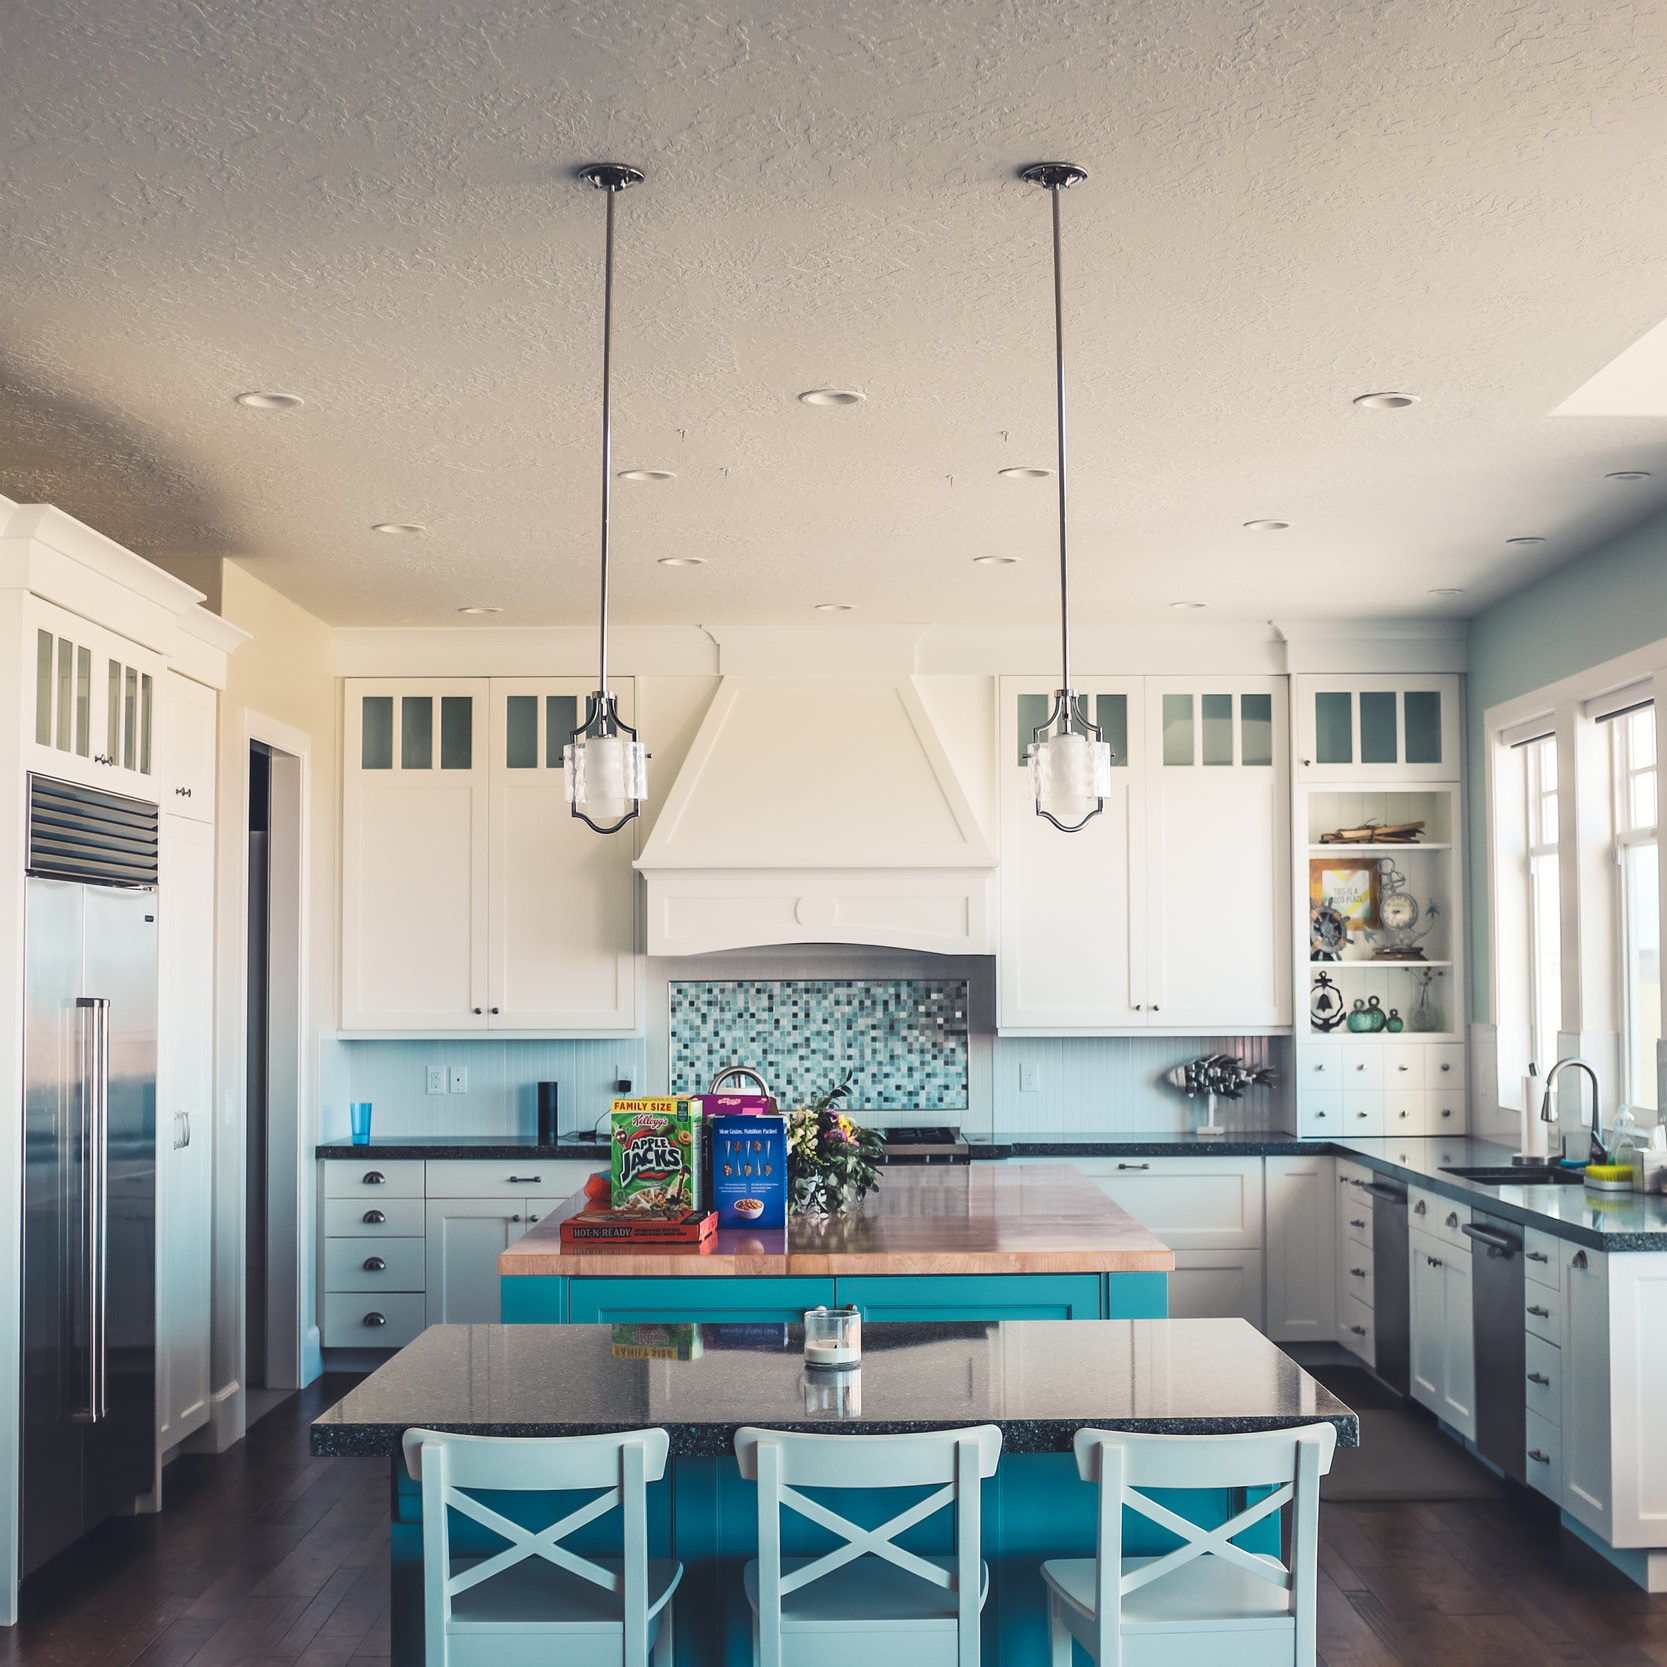 Home Organizing - We take a focused, unbiased look at the home organizing challenges clients raise and help them put the puzzle together with innovative organizing solutions to get the most out of the existing space and existing resources.